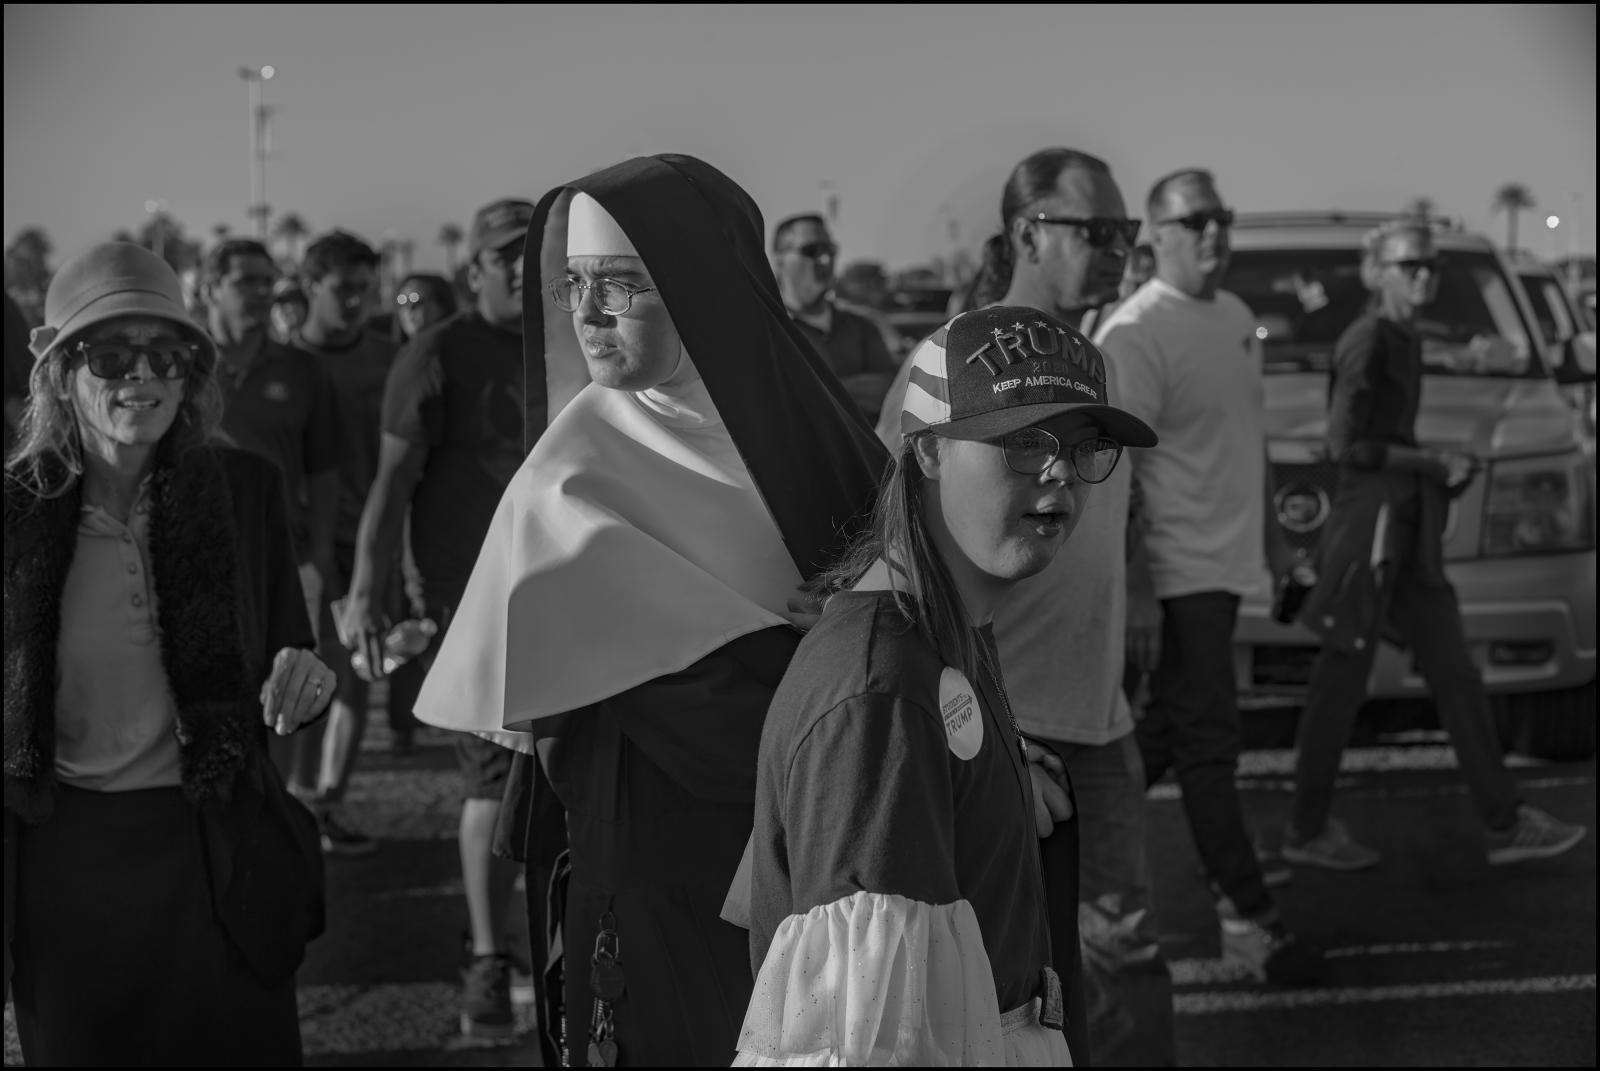 A Catholic nun with her young student. Presidential campaign event, Phoenix, AZ USA. February 2020.